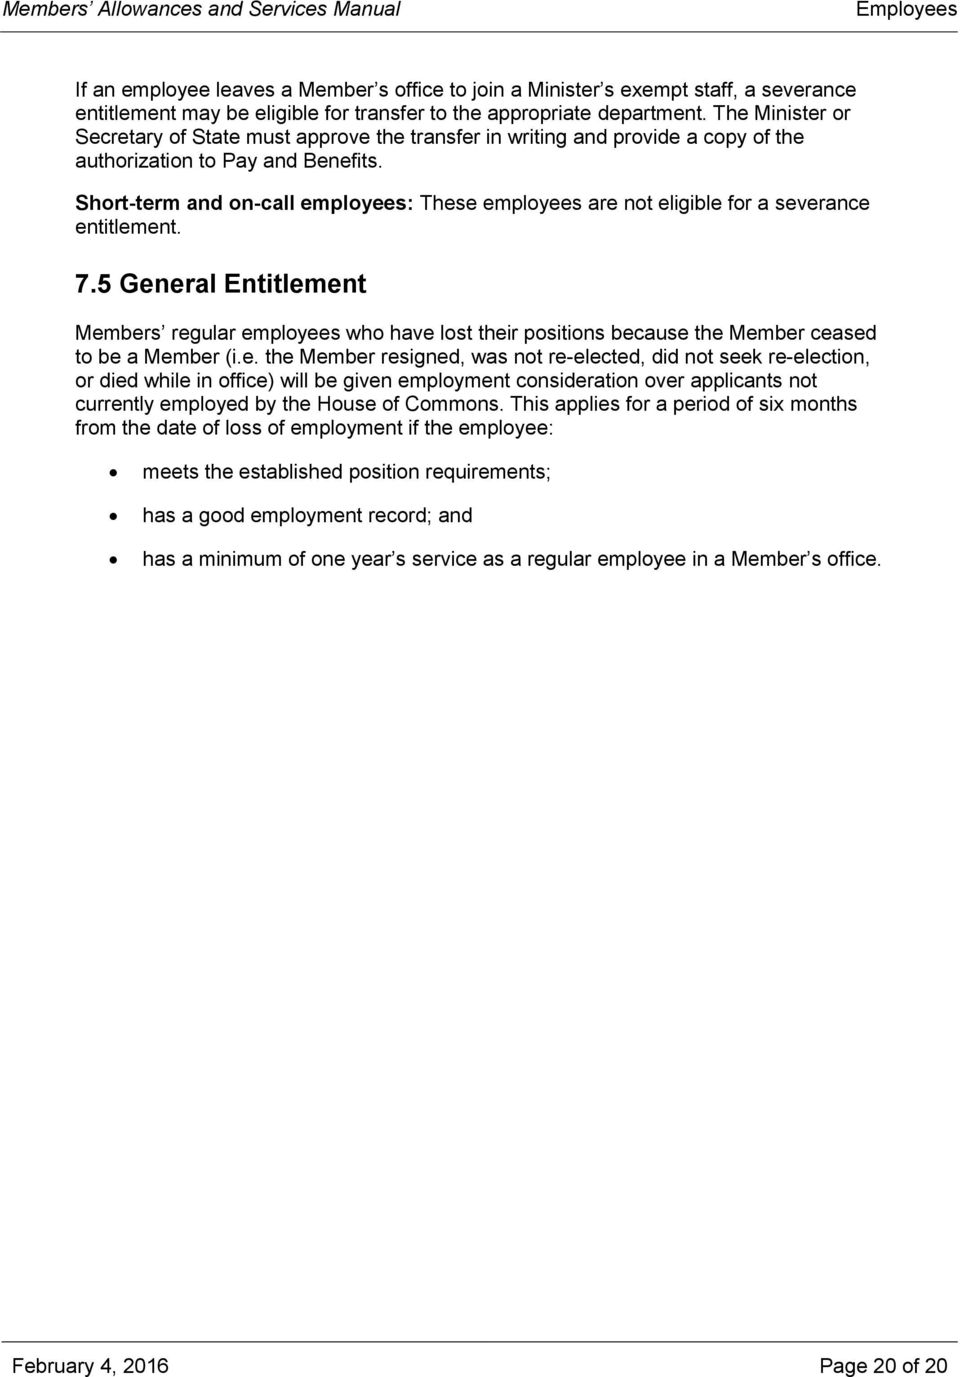 Short-term and on-call employees: These employees are not eligible for a severance entitlement. 7.